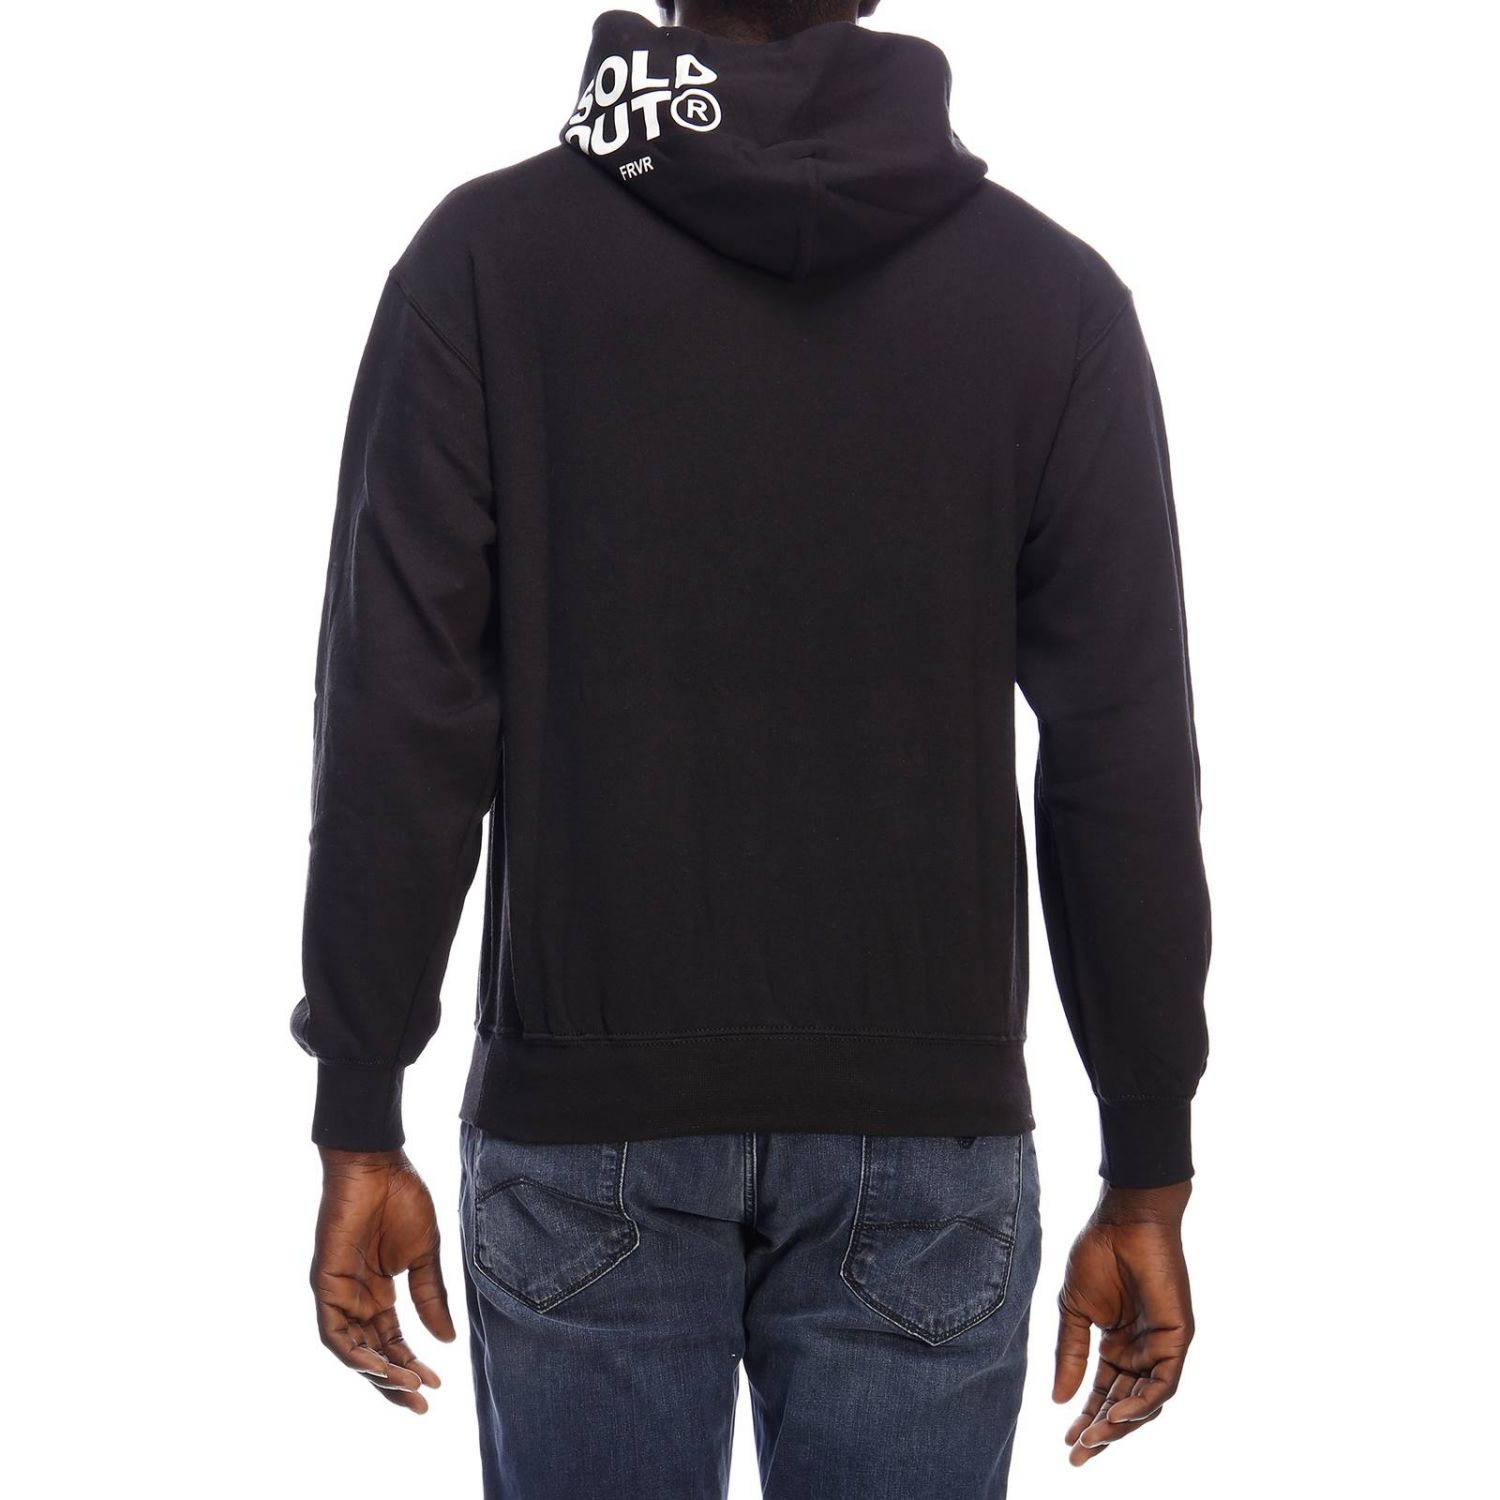 Pull homme Sold Out noir 3